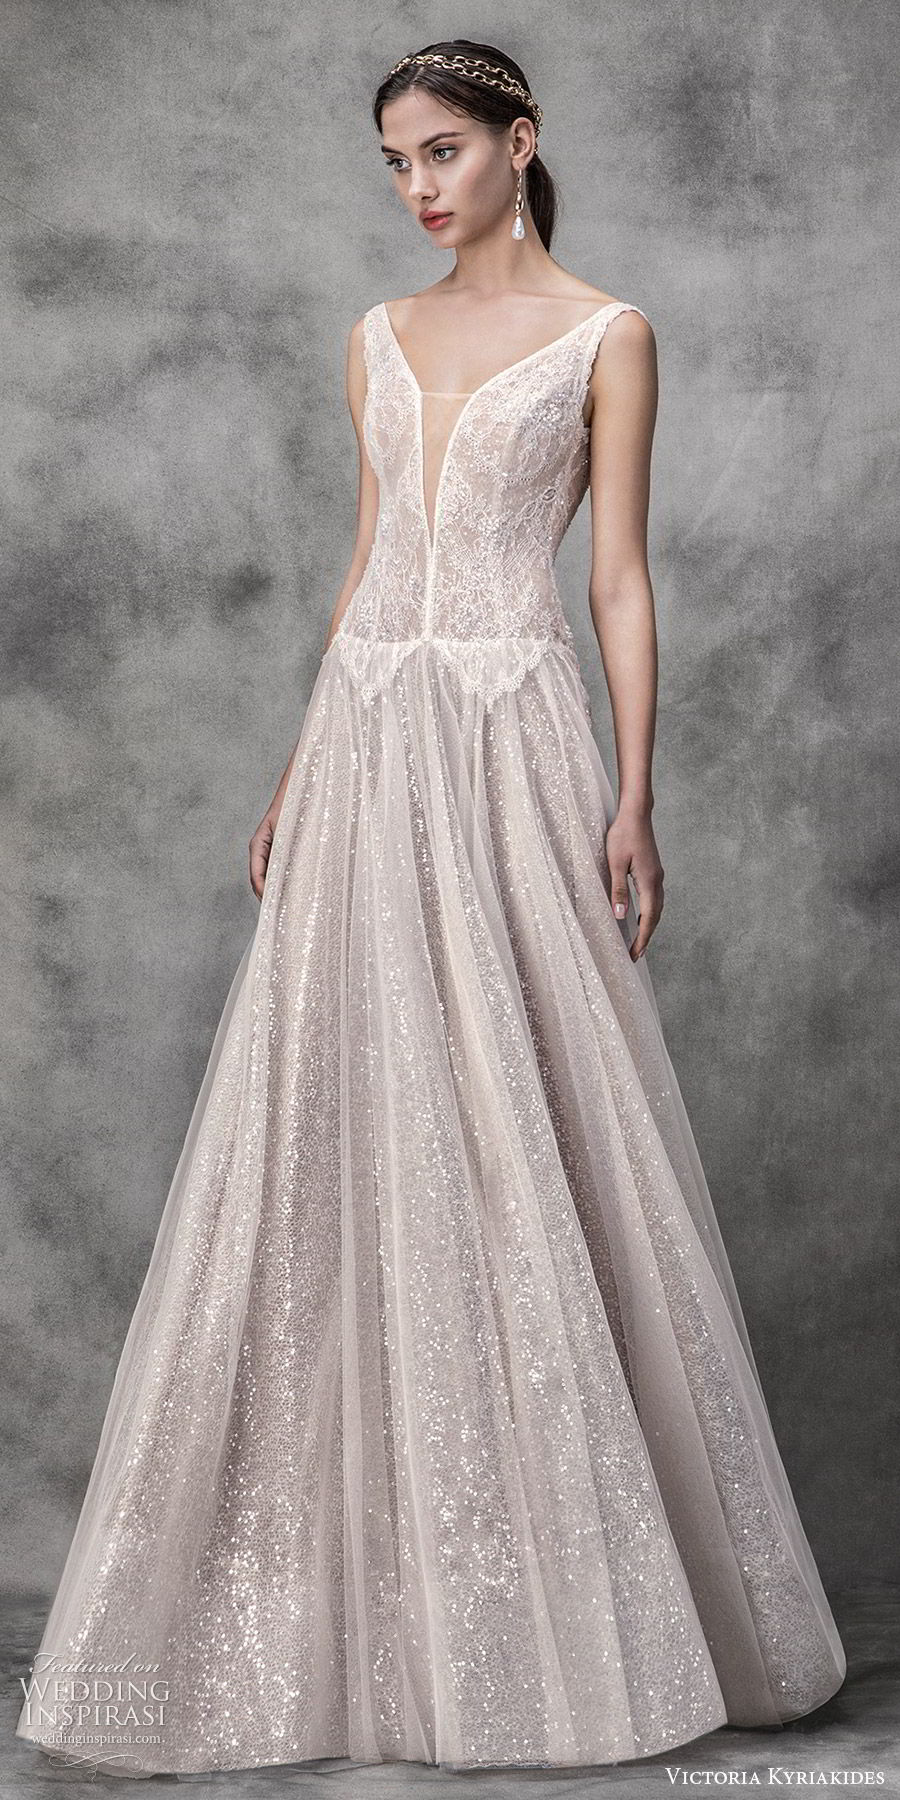 victoria kyriakides spring 2020 bridal sleeveless split sweetheart neckline drop waist fully embellished lace a line ball gown wedding dress (15) blush romantic glitzy mv